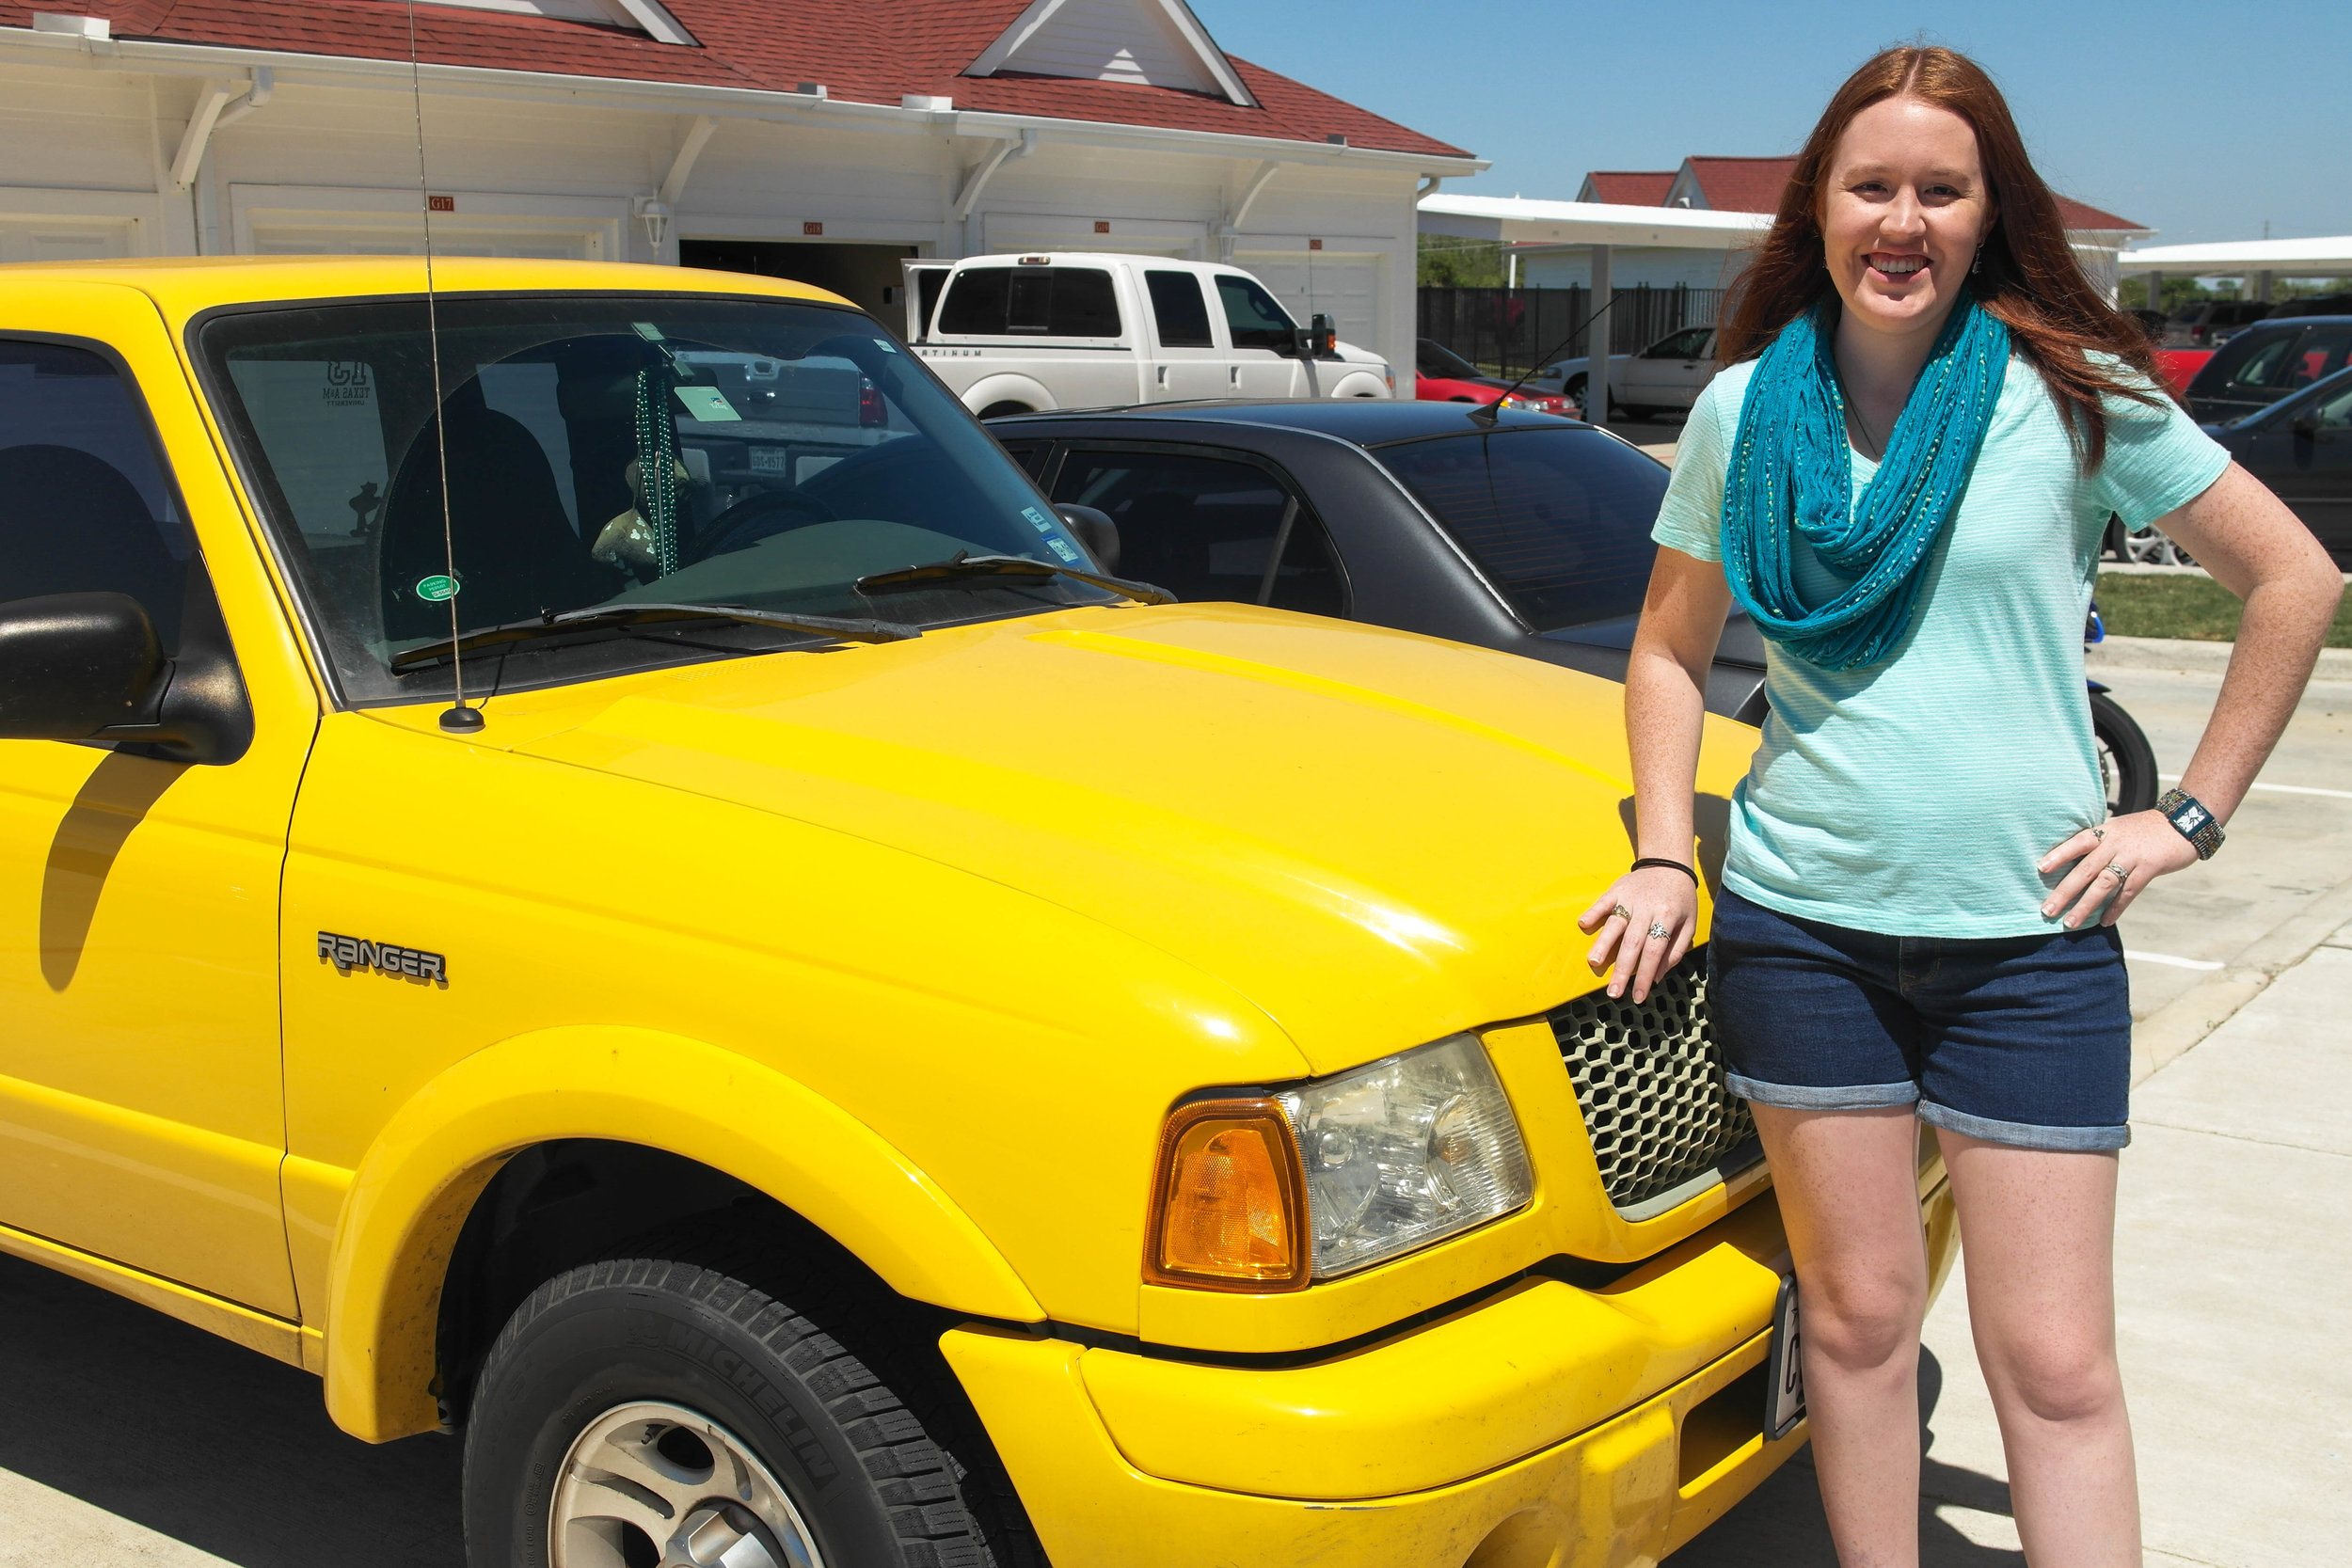 I drive a yellow truck